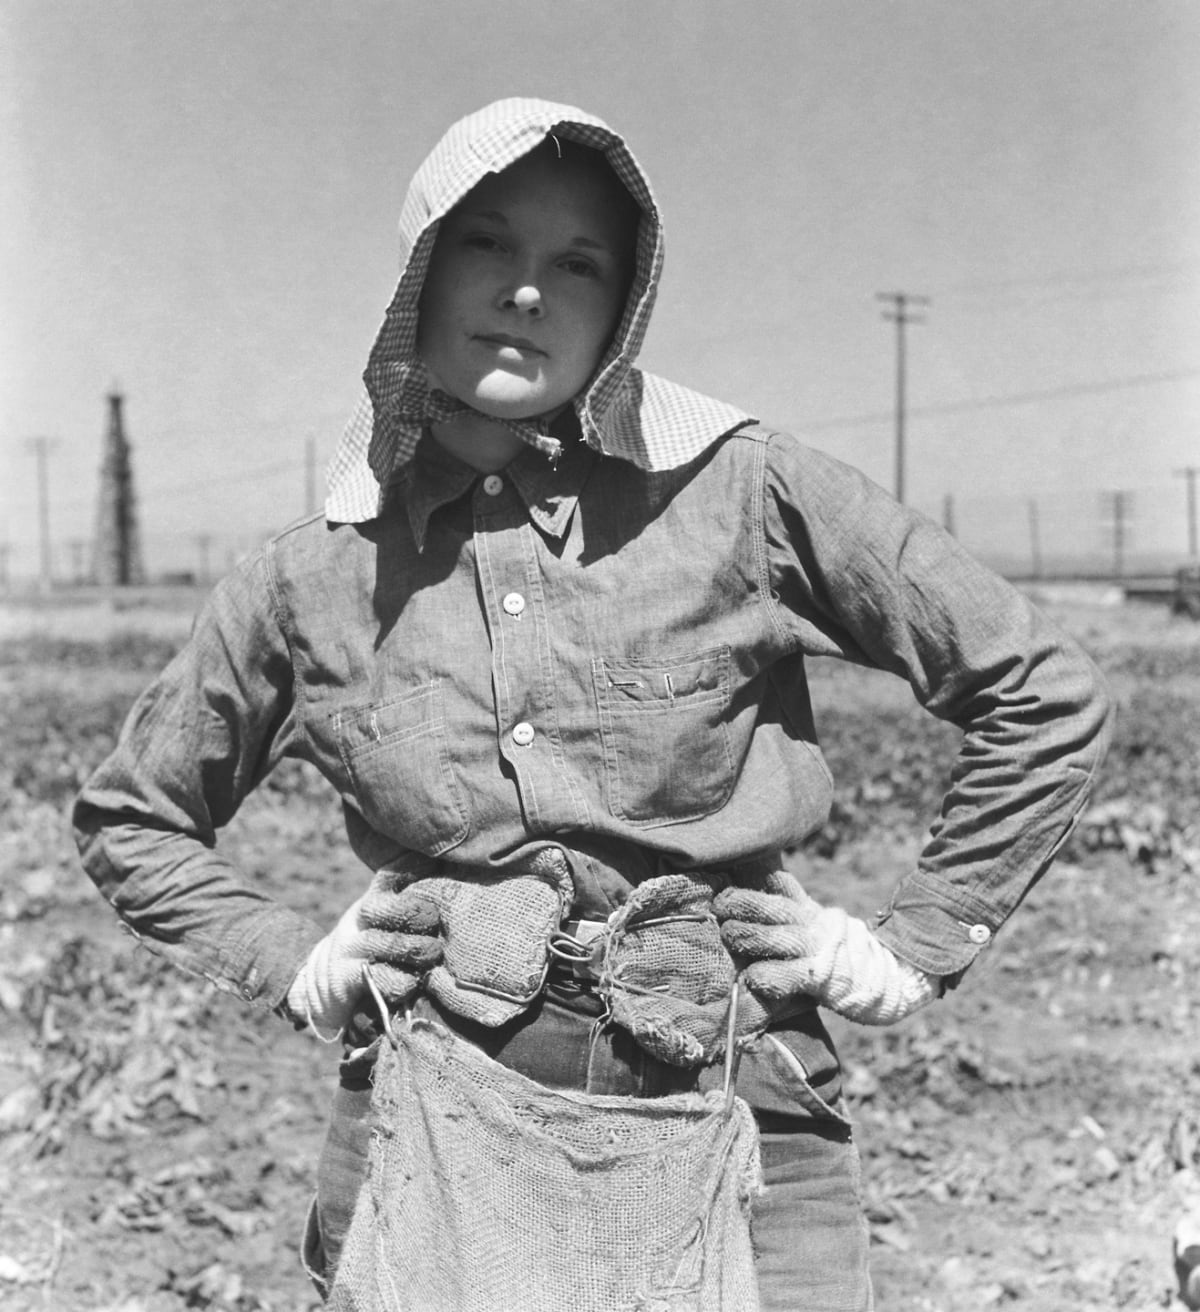 Potato Field Madonna, Kern County, California, 1940 Ron was hired by Dorothea Lange to drive her throughout California as she photographed the conditions of migrant workers. Ron also took the opportunity to photograph as well, during these trips. Here he photographed a young woman that was just about the same age he was at that time.